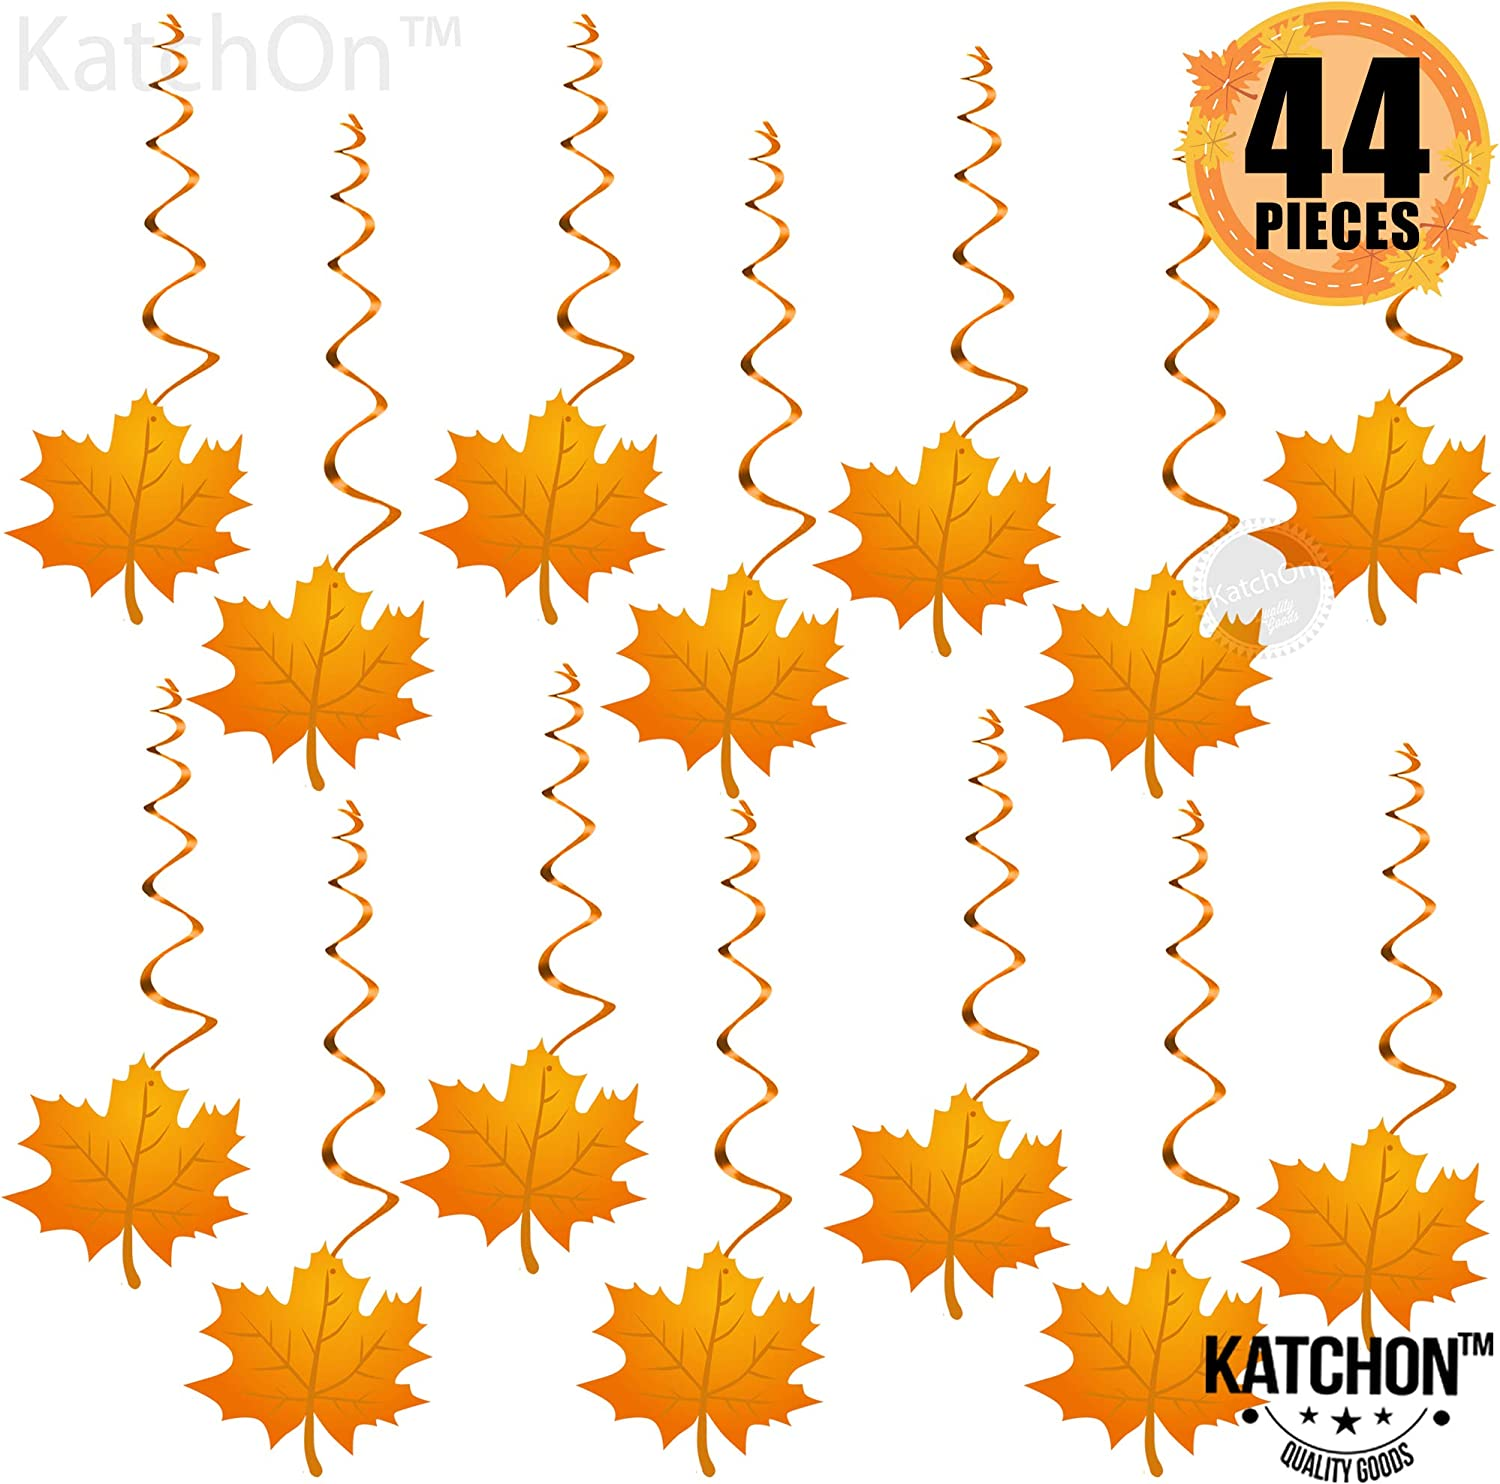 Hanging Swirls for Thanksgiving Decorations – Pack of 30, Maple Leaf Fall Themed Decorations Supplies | No DIY Required | Thanksgiving Ceiling Decorations | Fall Autumn Décor | Decor for Home Office